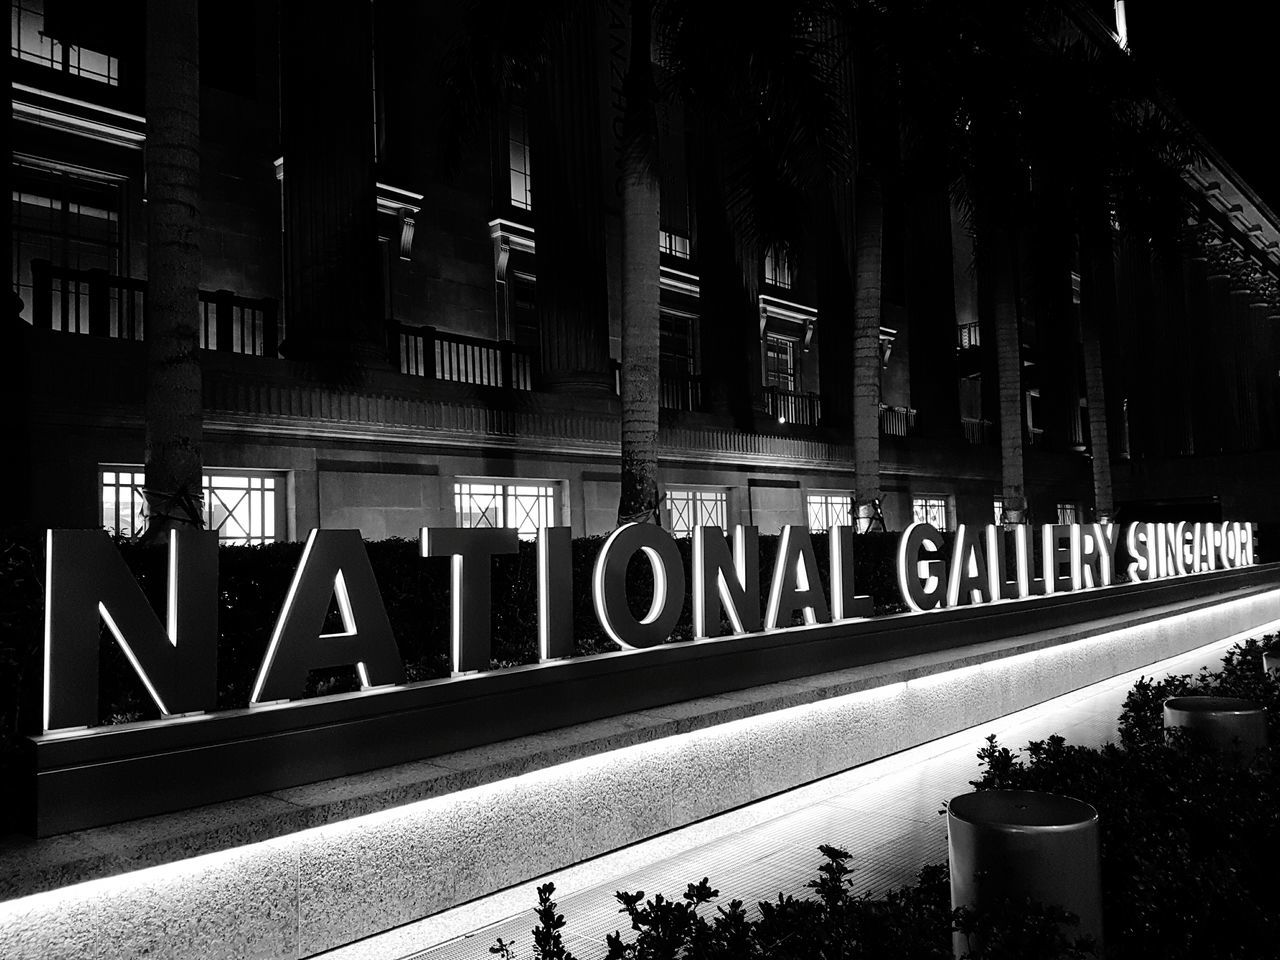 National Gallery Museum Taking Photos Check This Out Typography Museum Singapore Landmarks Buildingstyles Modern Meets Old Fashioned Cityscapes Streetphotography Architecture Samsung S7 Edge Photography Nightphotography